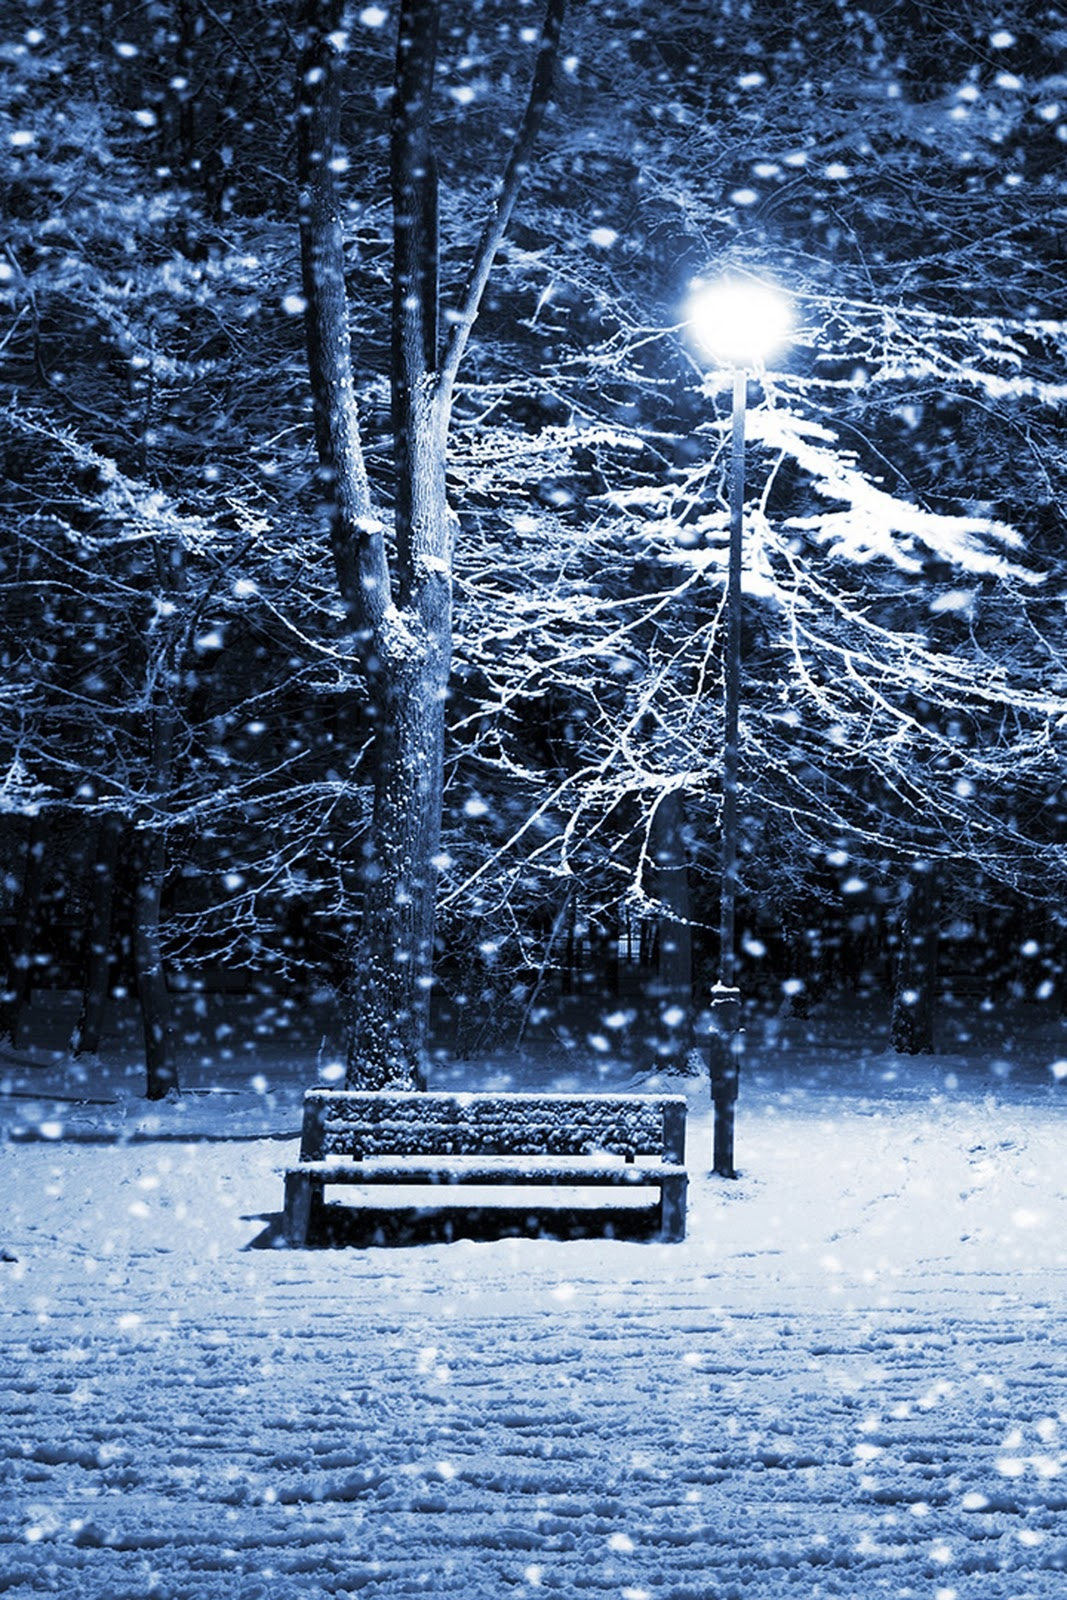 Snowy Night Iphone Wallpaper Winter Wallpaper Hd Iphone 5 984708 Hd Wallpaper Backgrounds Download